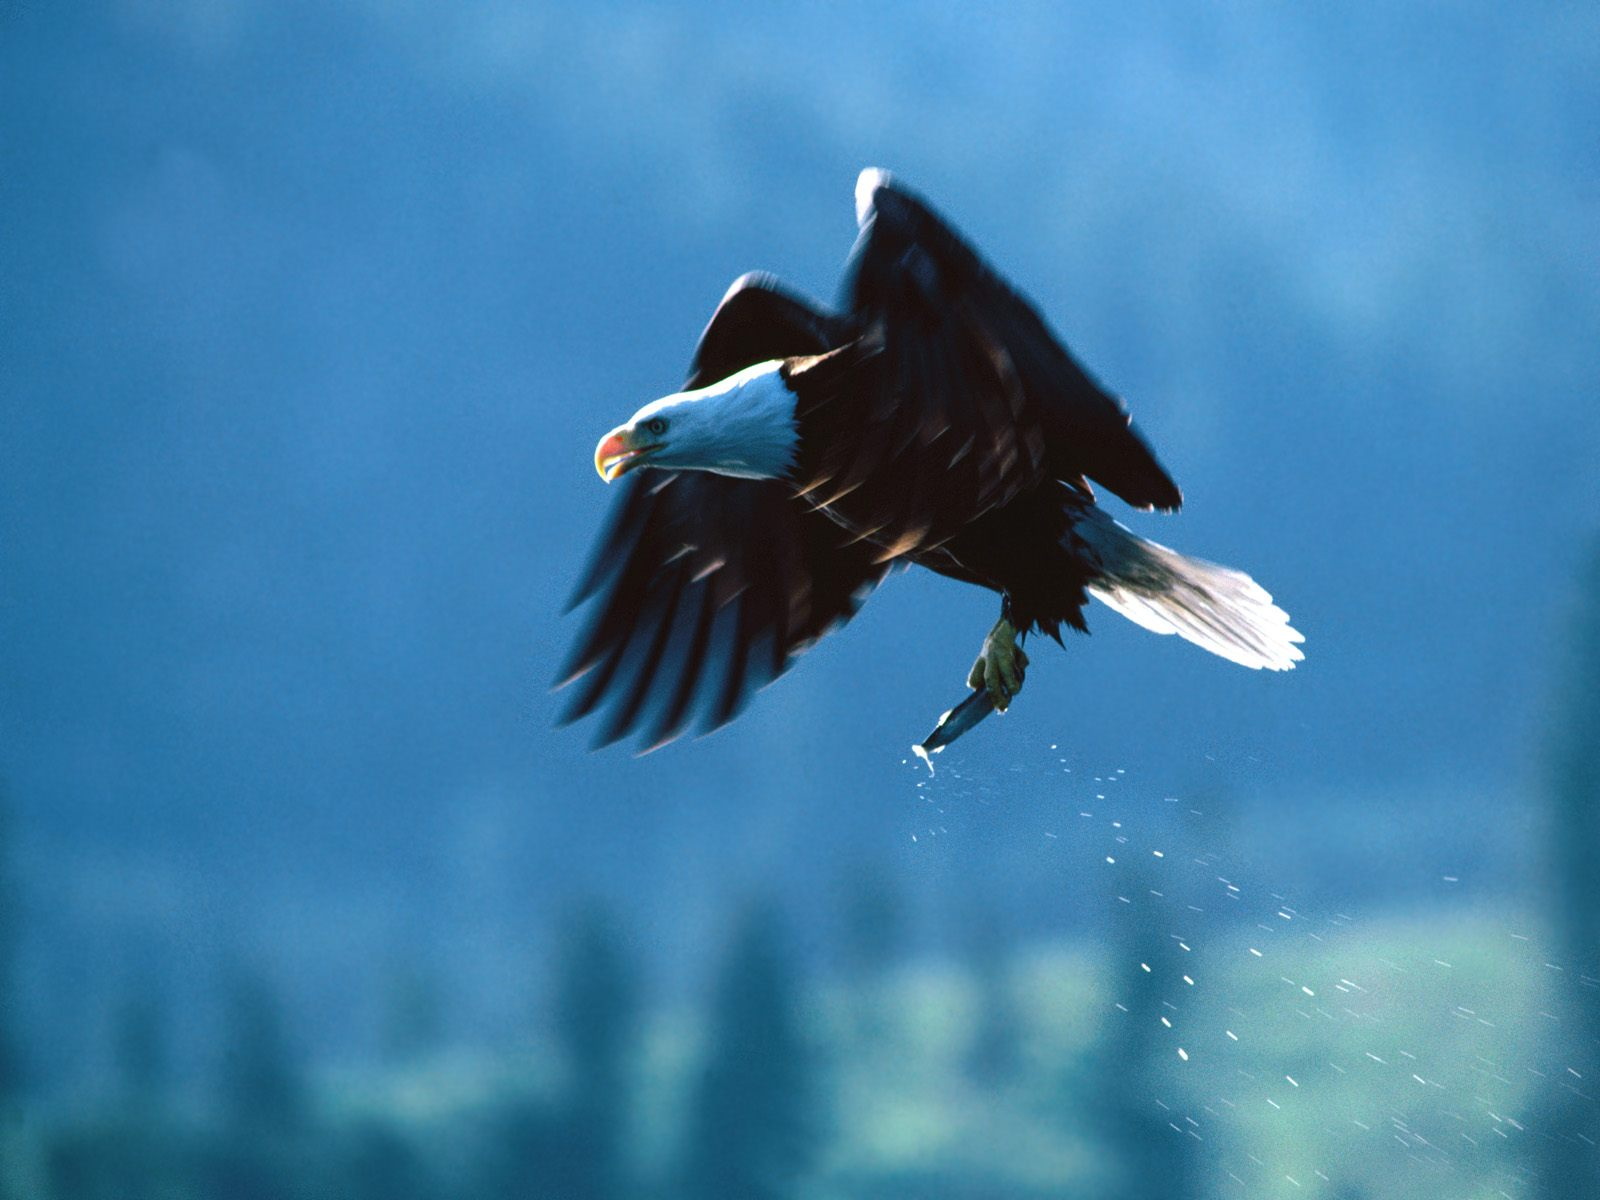 Download Free Falcons Wallpapers 3 Beautiful Collection: Beautiful Birds Of The World Wallpapers